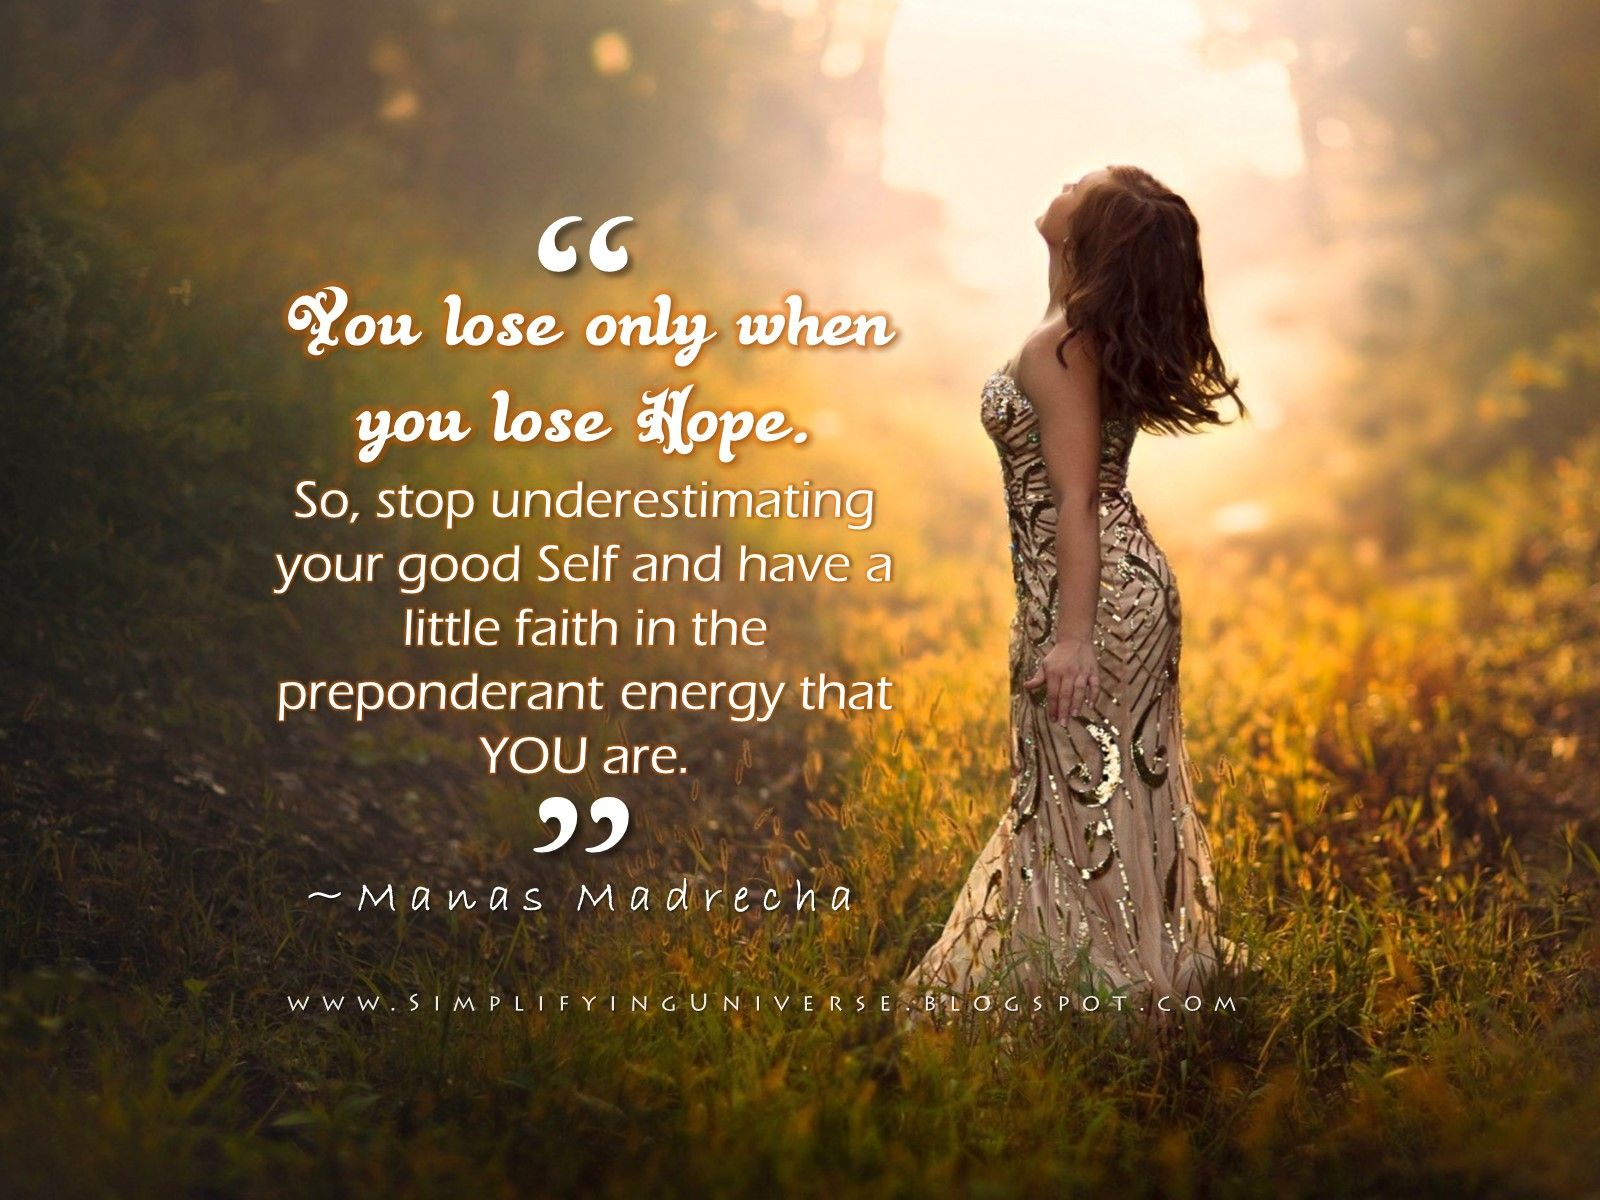 girl looking away sunlight nature green, manas madrecha quotes on hope, quotes on self, girl silver dress, motivation quotes, inspirational quotes on hope, simplifying universe, self-help blog